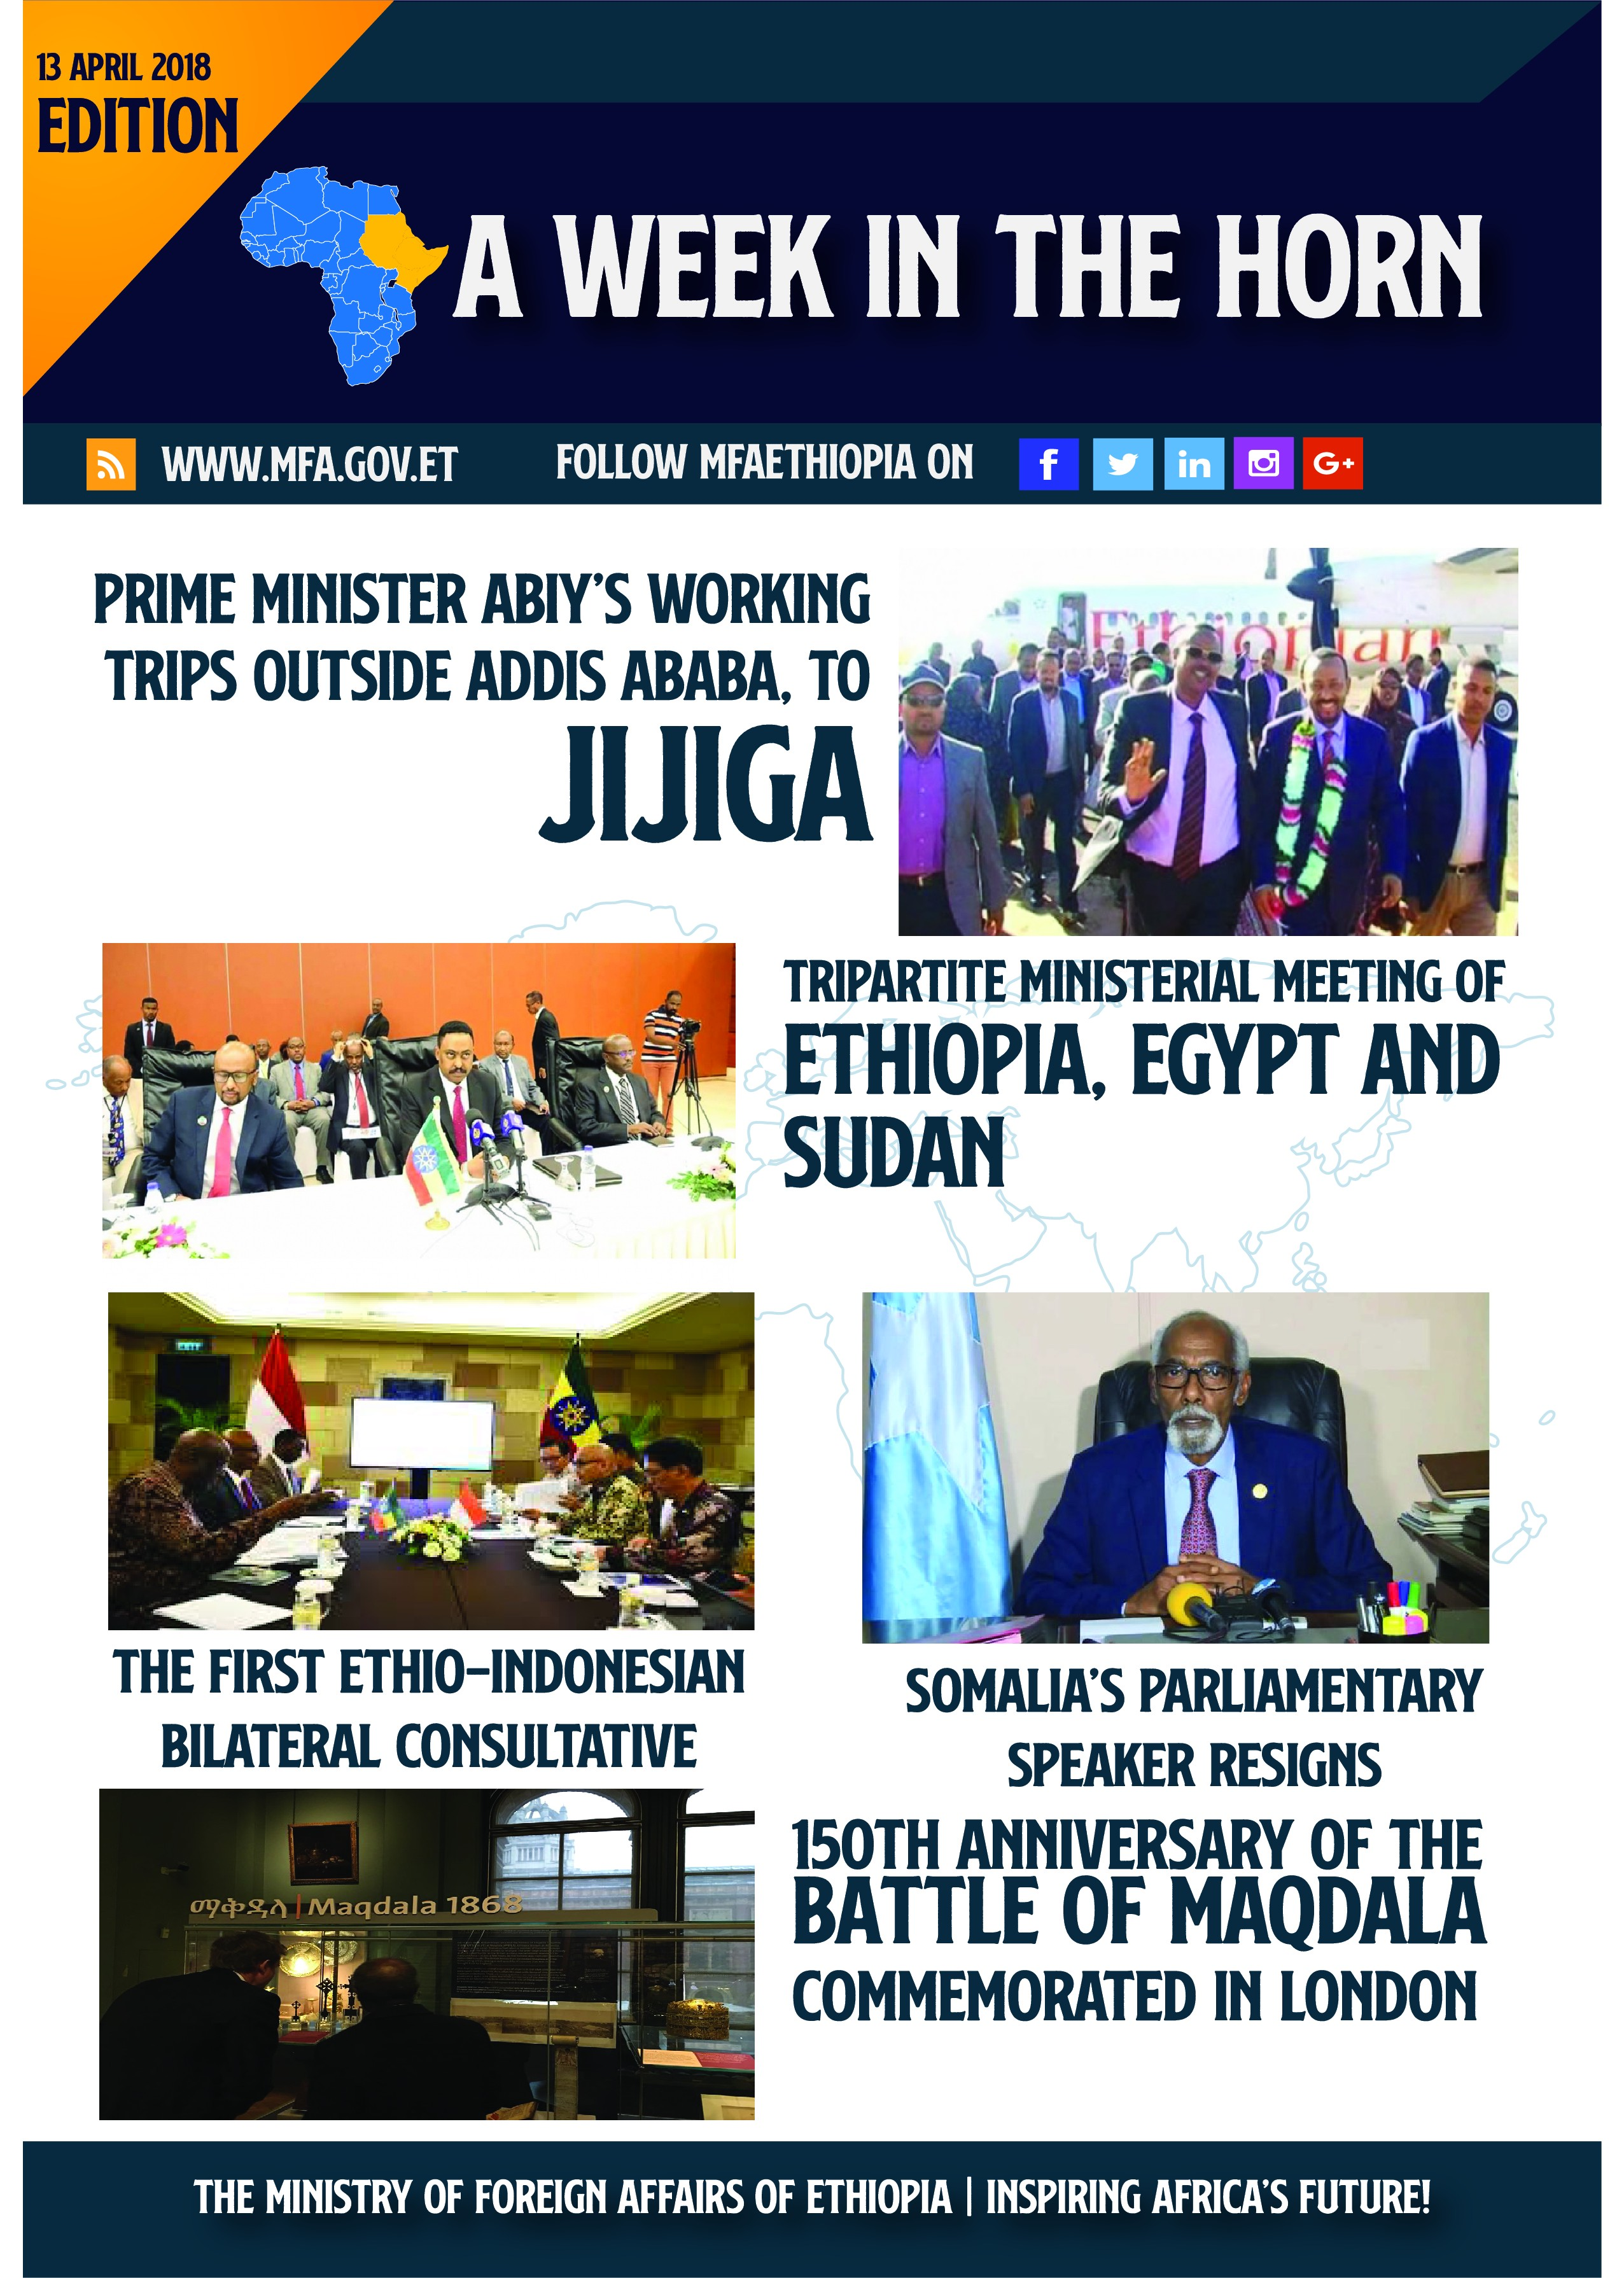 A Week In The Horn 13 04 2018 Prime Minister Abiy S Working Trips By The Ministry Of Foreign Affairs Of Ethiopia Medium